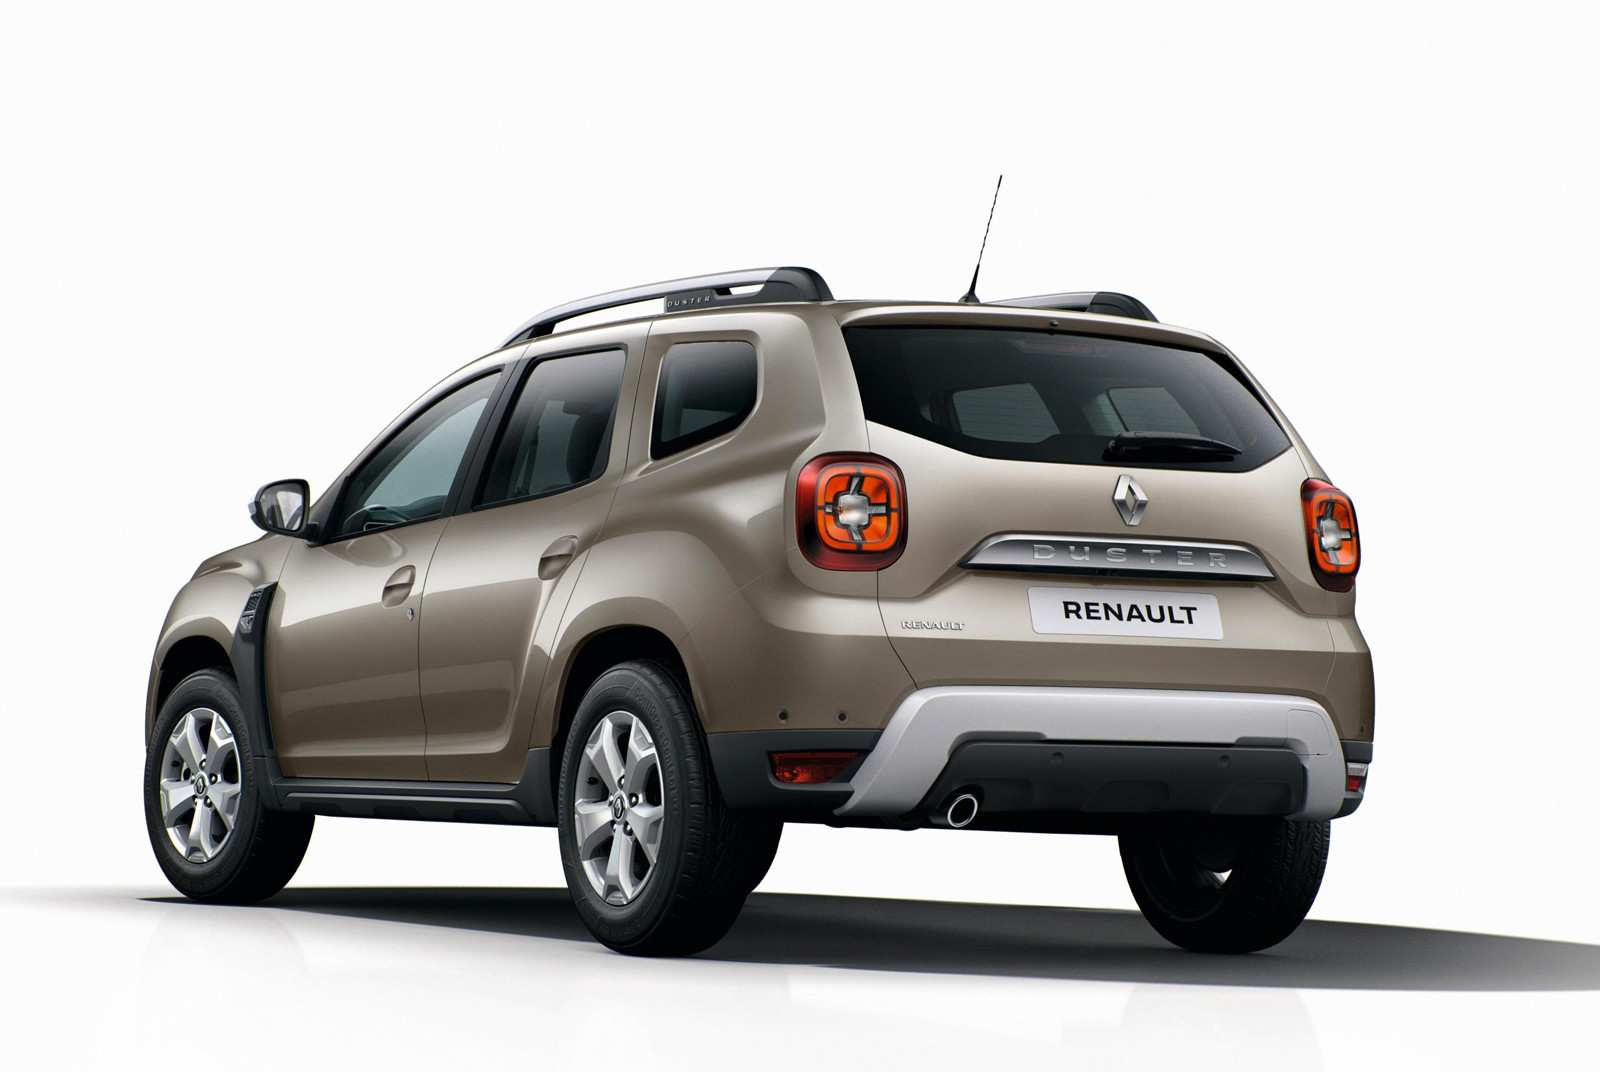 55 New Renault Duster 2019 Colombia Style